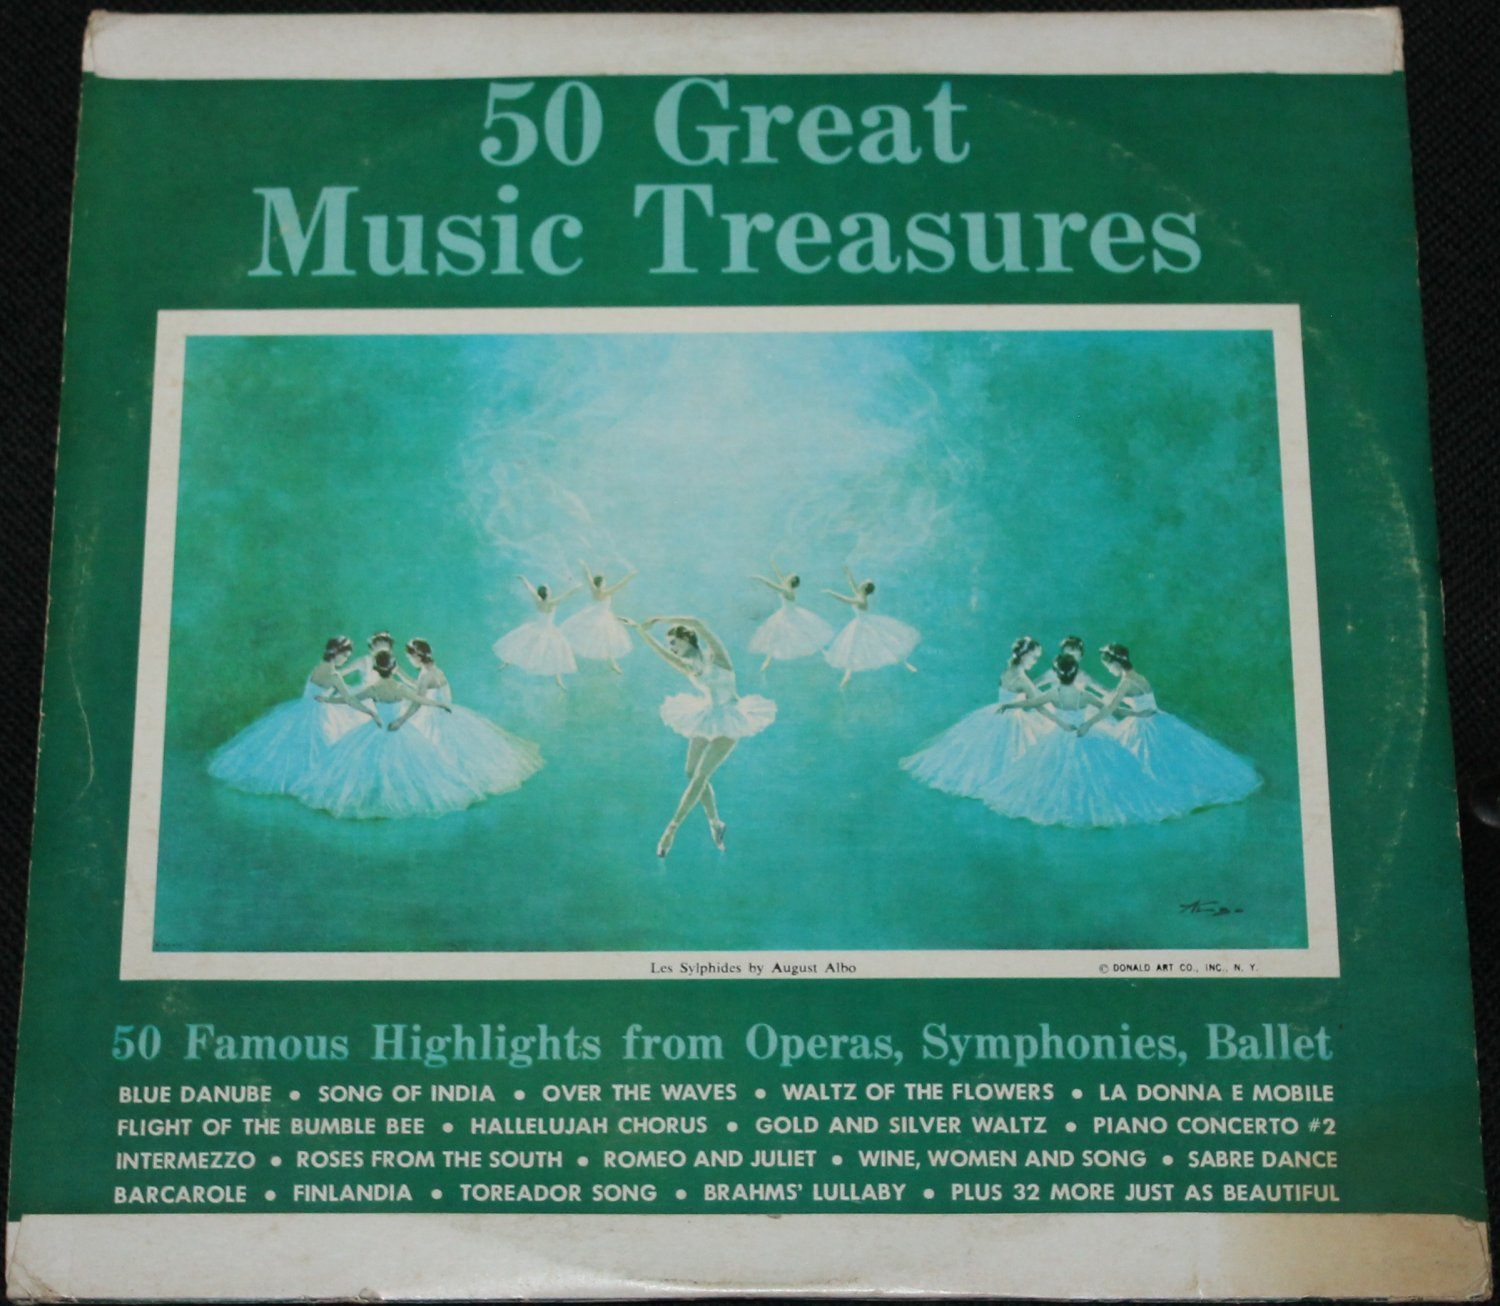 50 Great Music Treasures Record - 50 Famous Highlights from Operas, Symphonies, Ballet